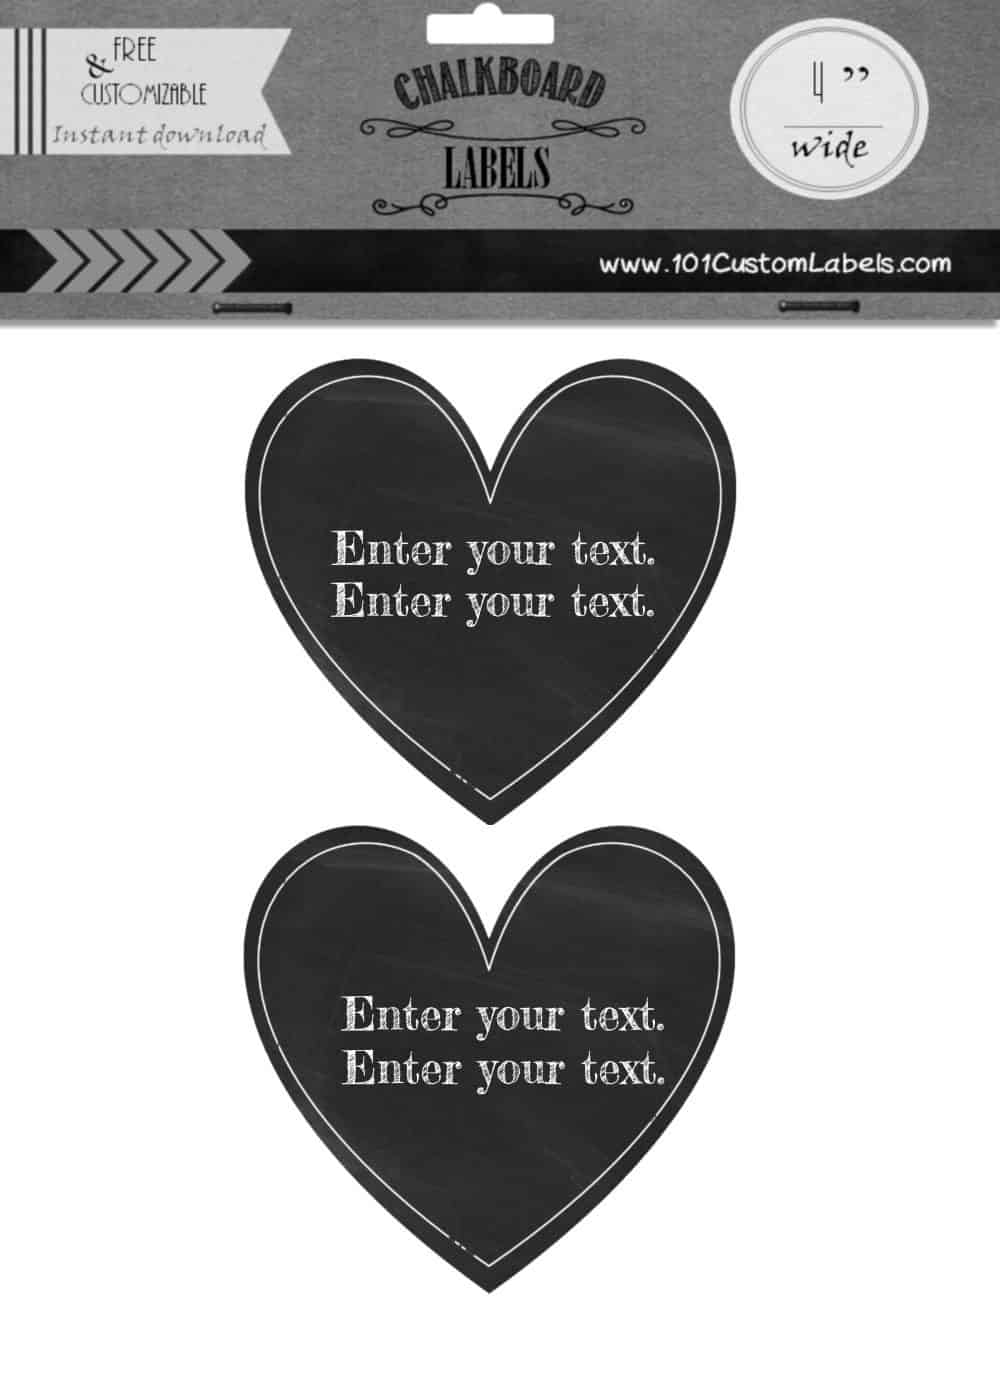 image about Printable Heart Shaped Labels known as Absolutely free Custom made Center Labels